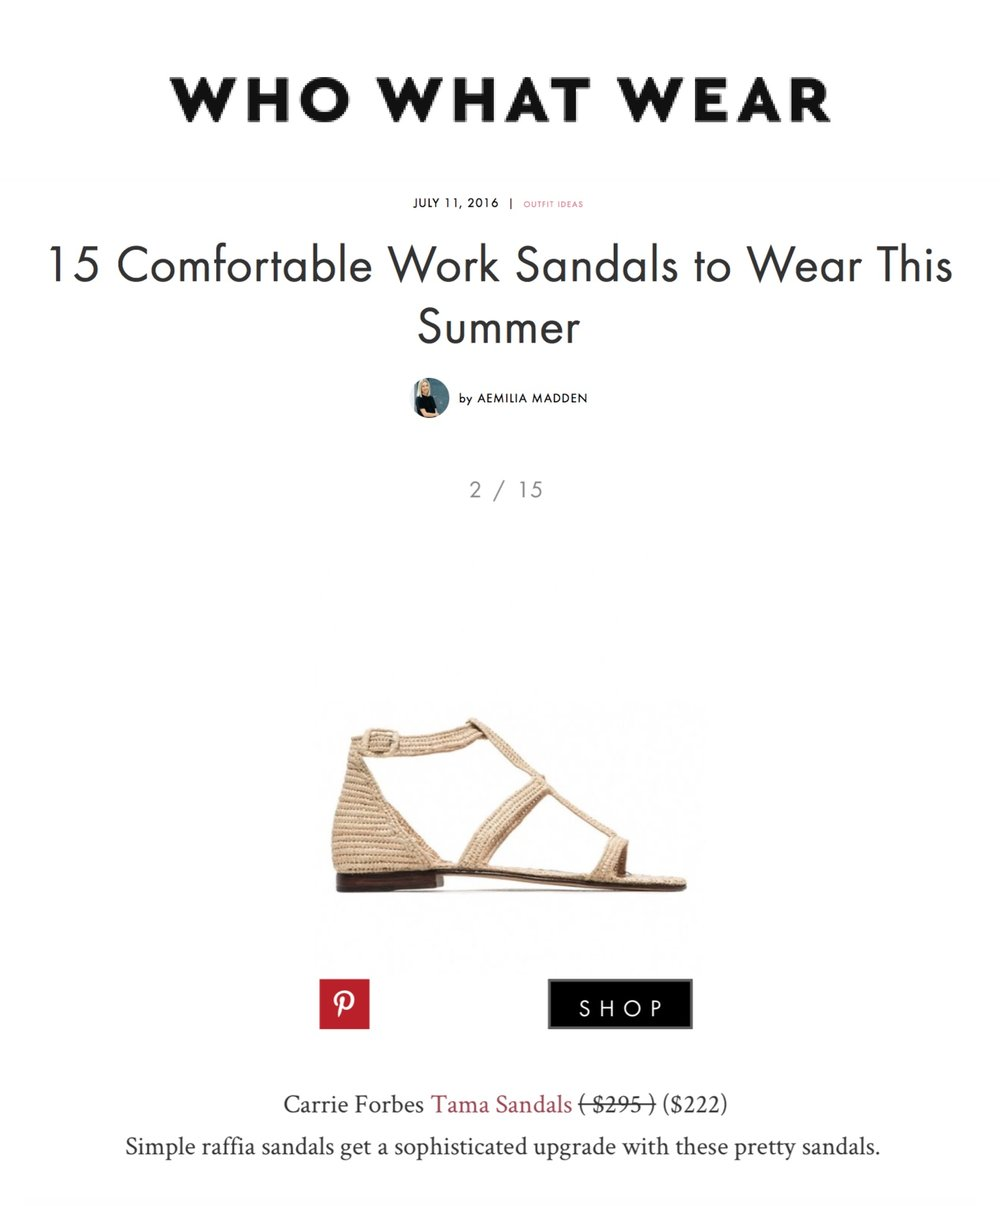 WHO WHAT WEAR JULY 11 2016_xl.jpg